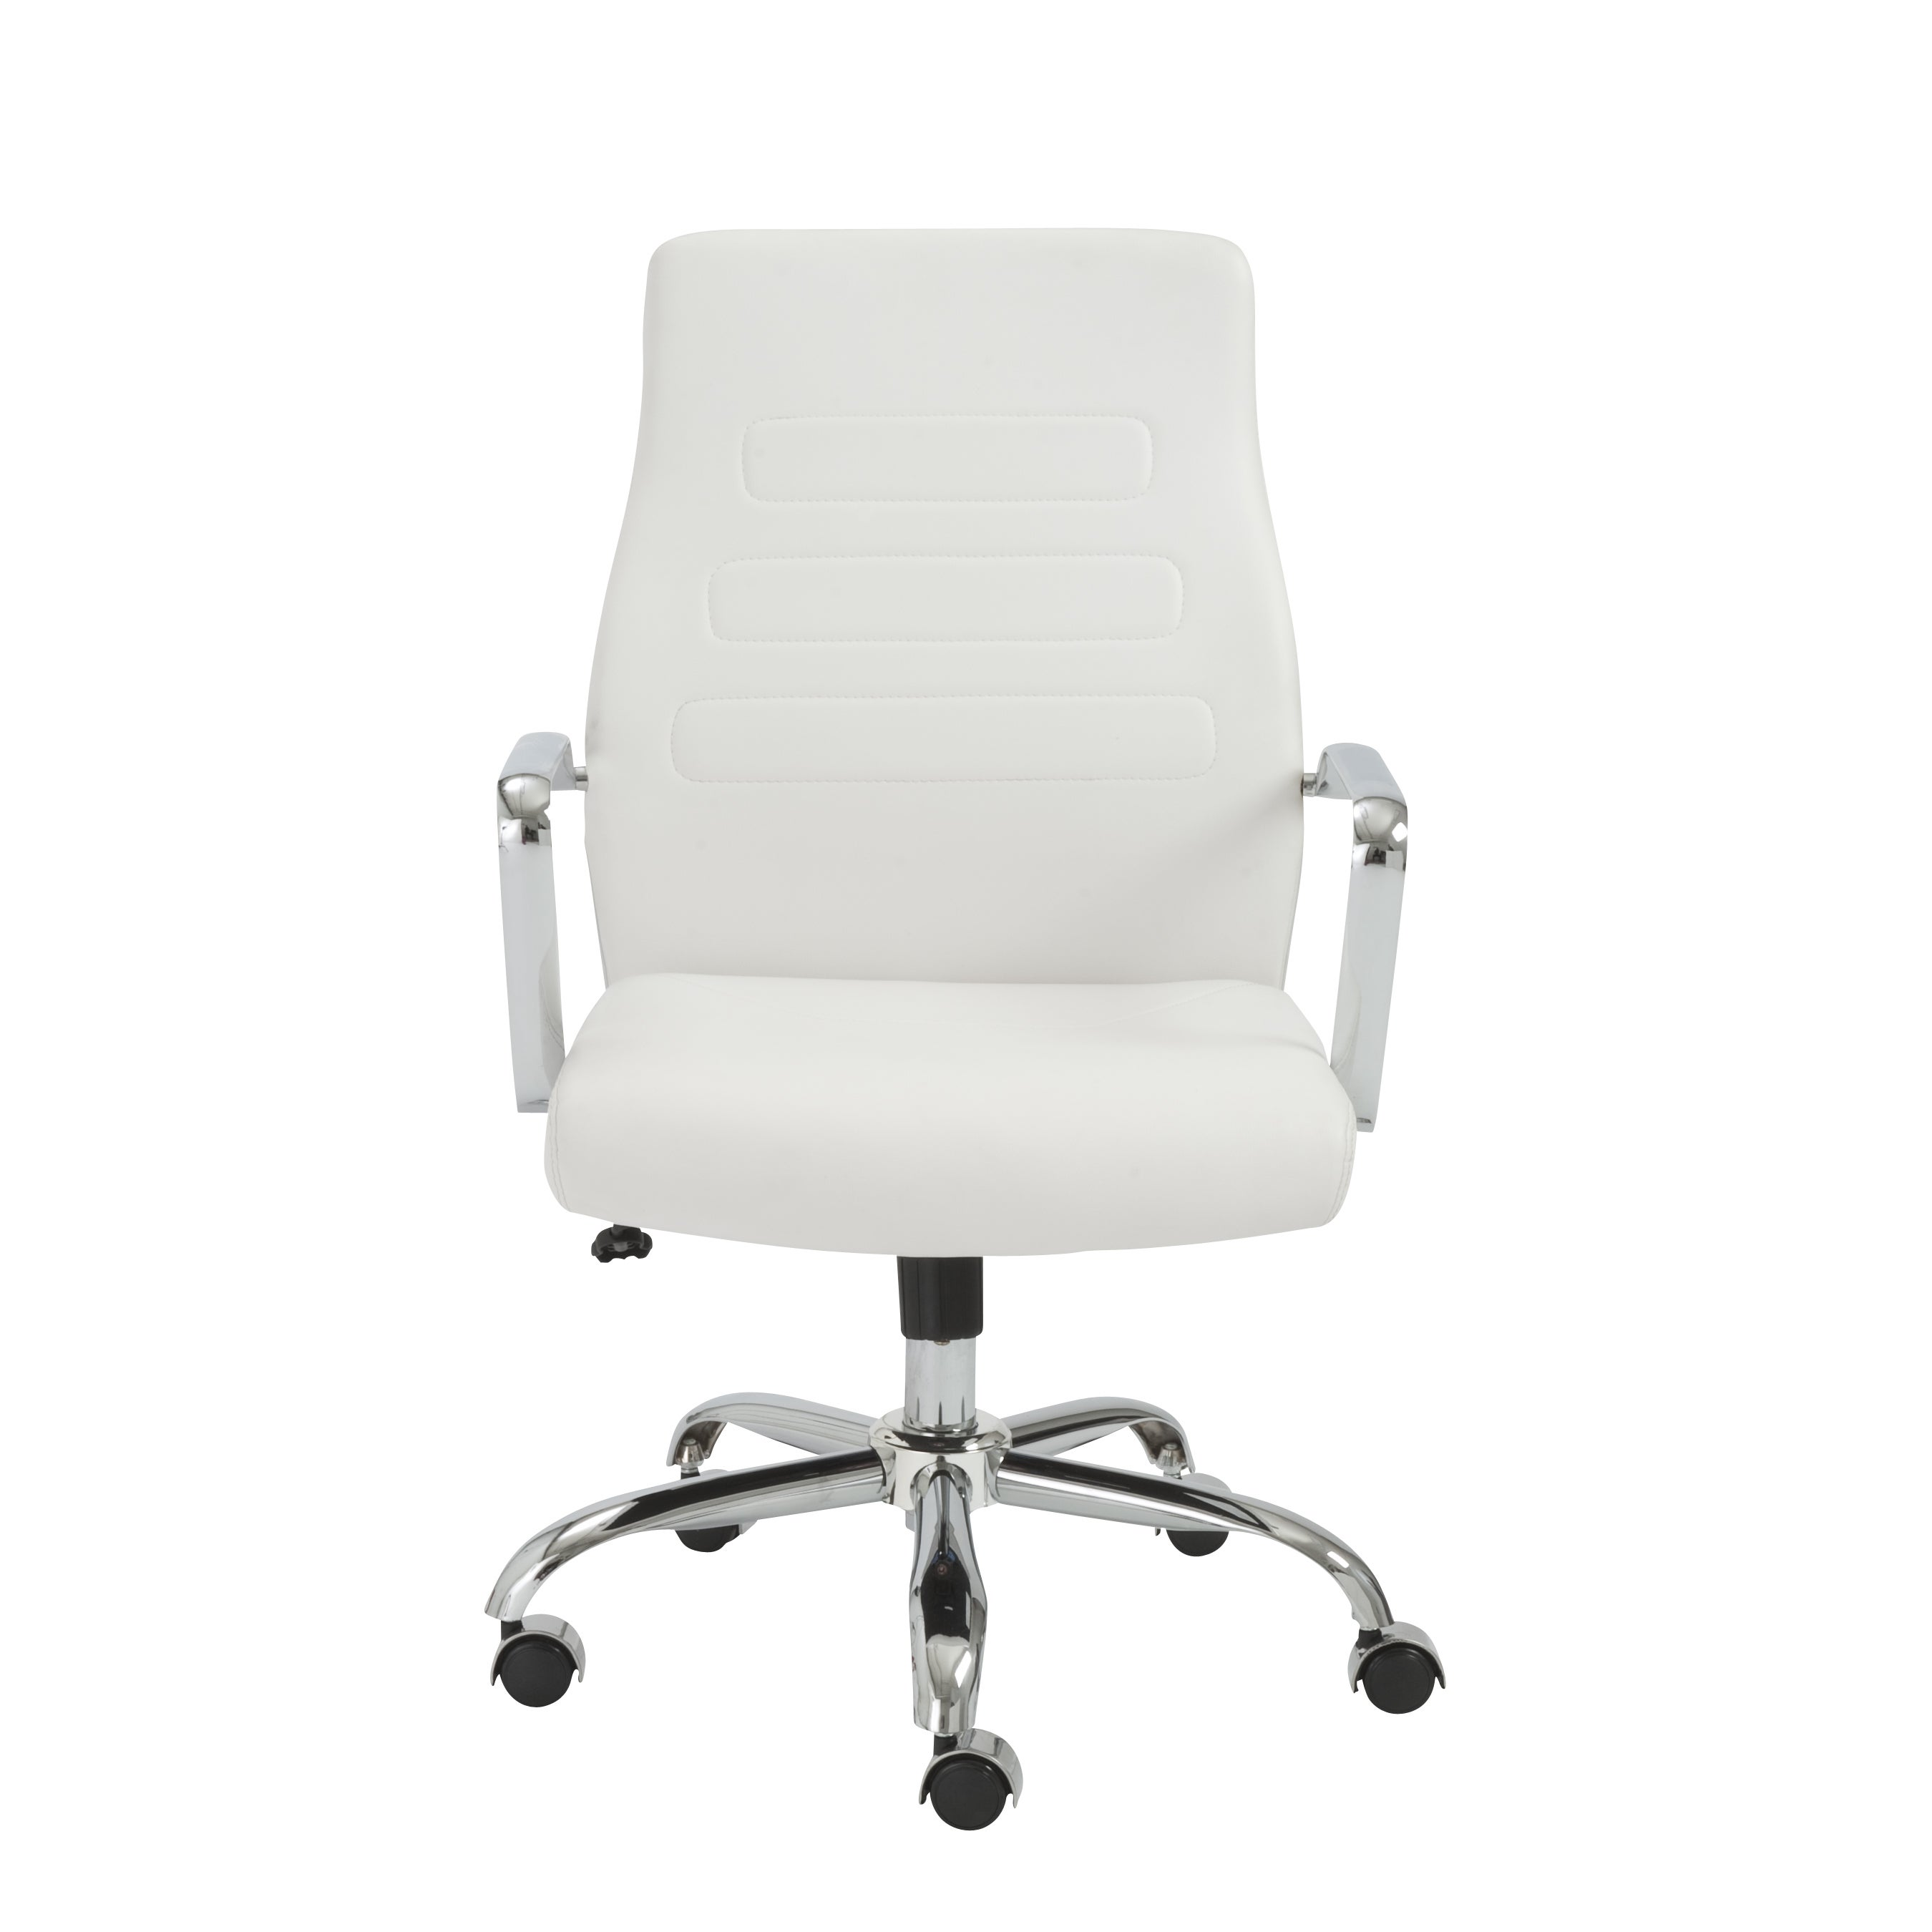 Fenella White Chrome Office Chair Free Shipping Today 10989140